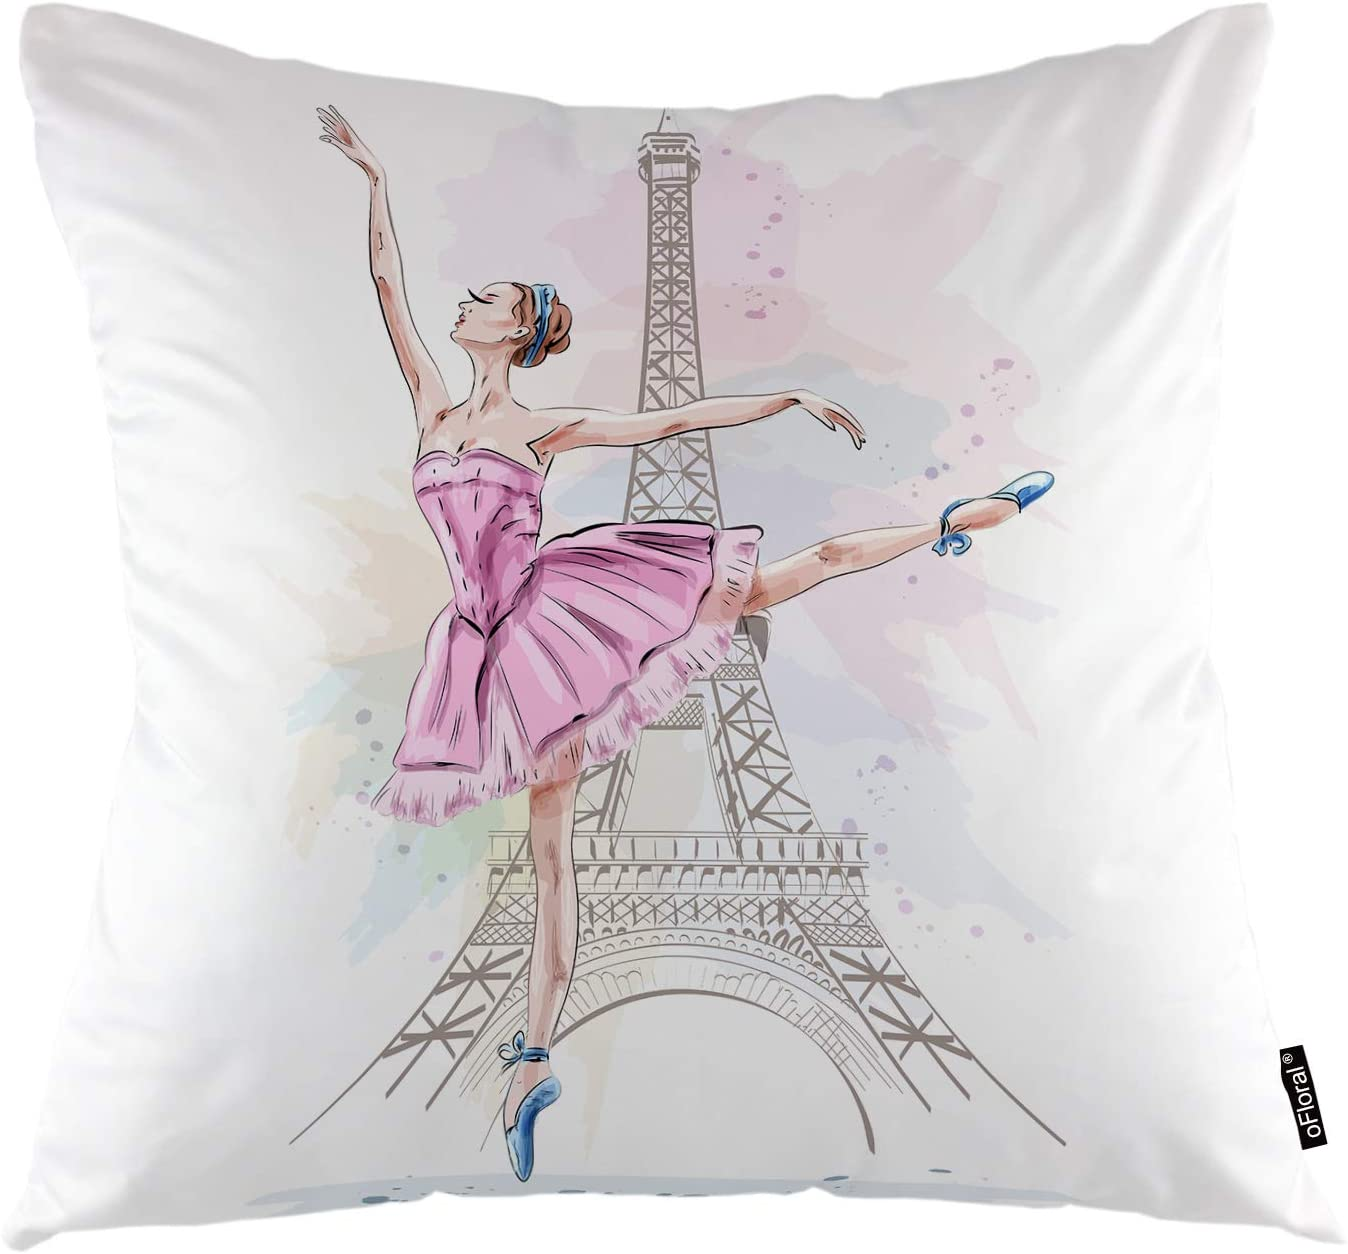 "oFloral Eiffel Tower Throw Pillow Covers Ballet Girl Dancer Paris Eiffel Tower Decorative Square Pillow Case 18""X18"" Pillowcase Home Decor for for Sofa Bedroom Livingroom"